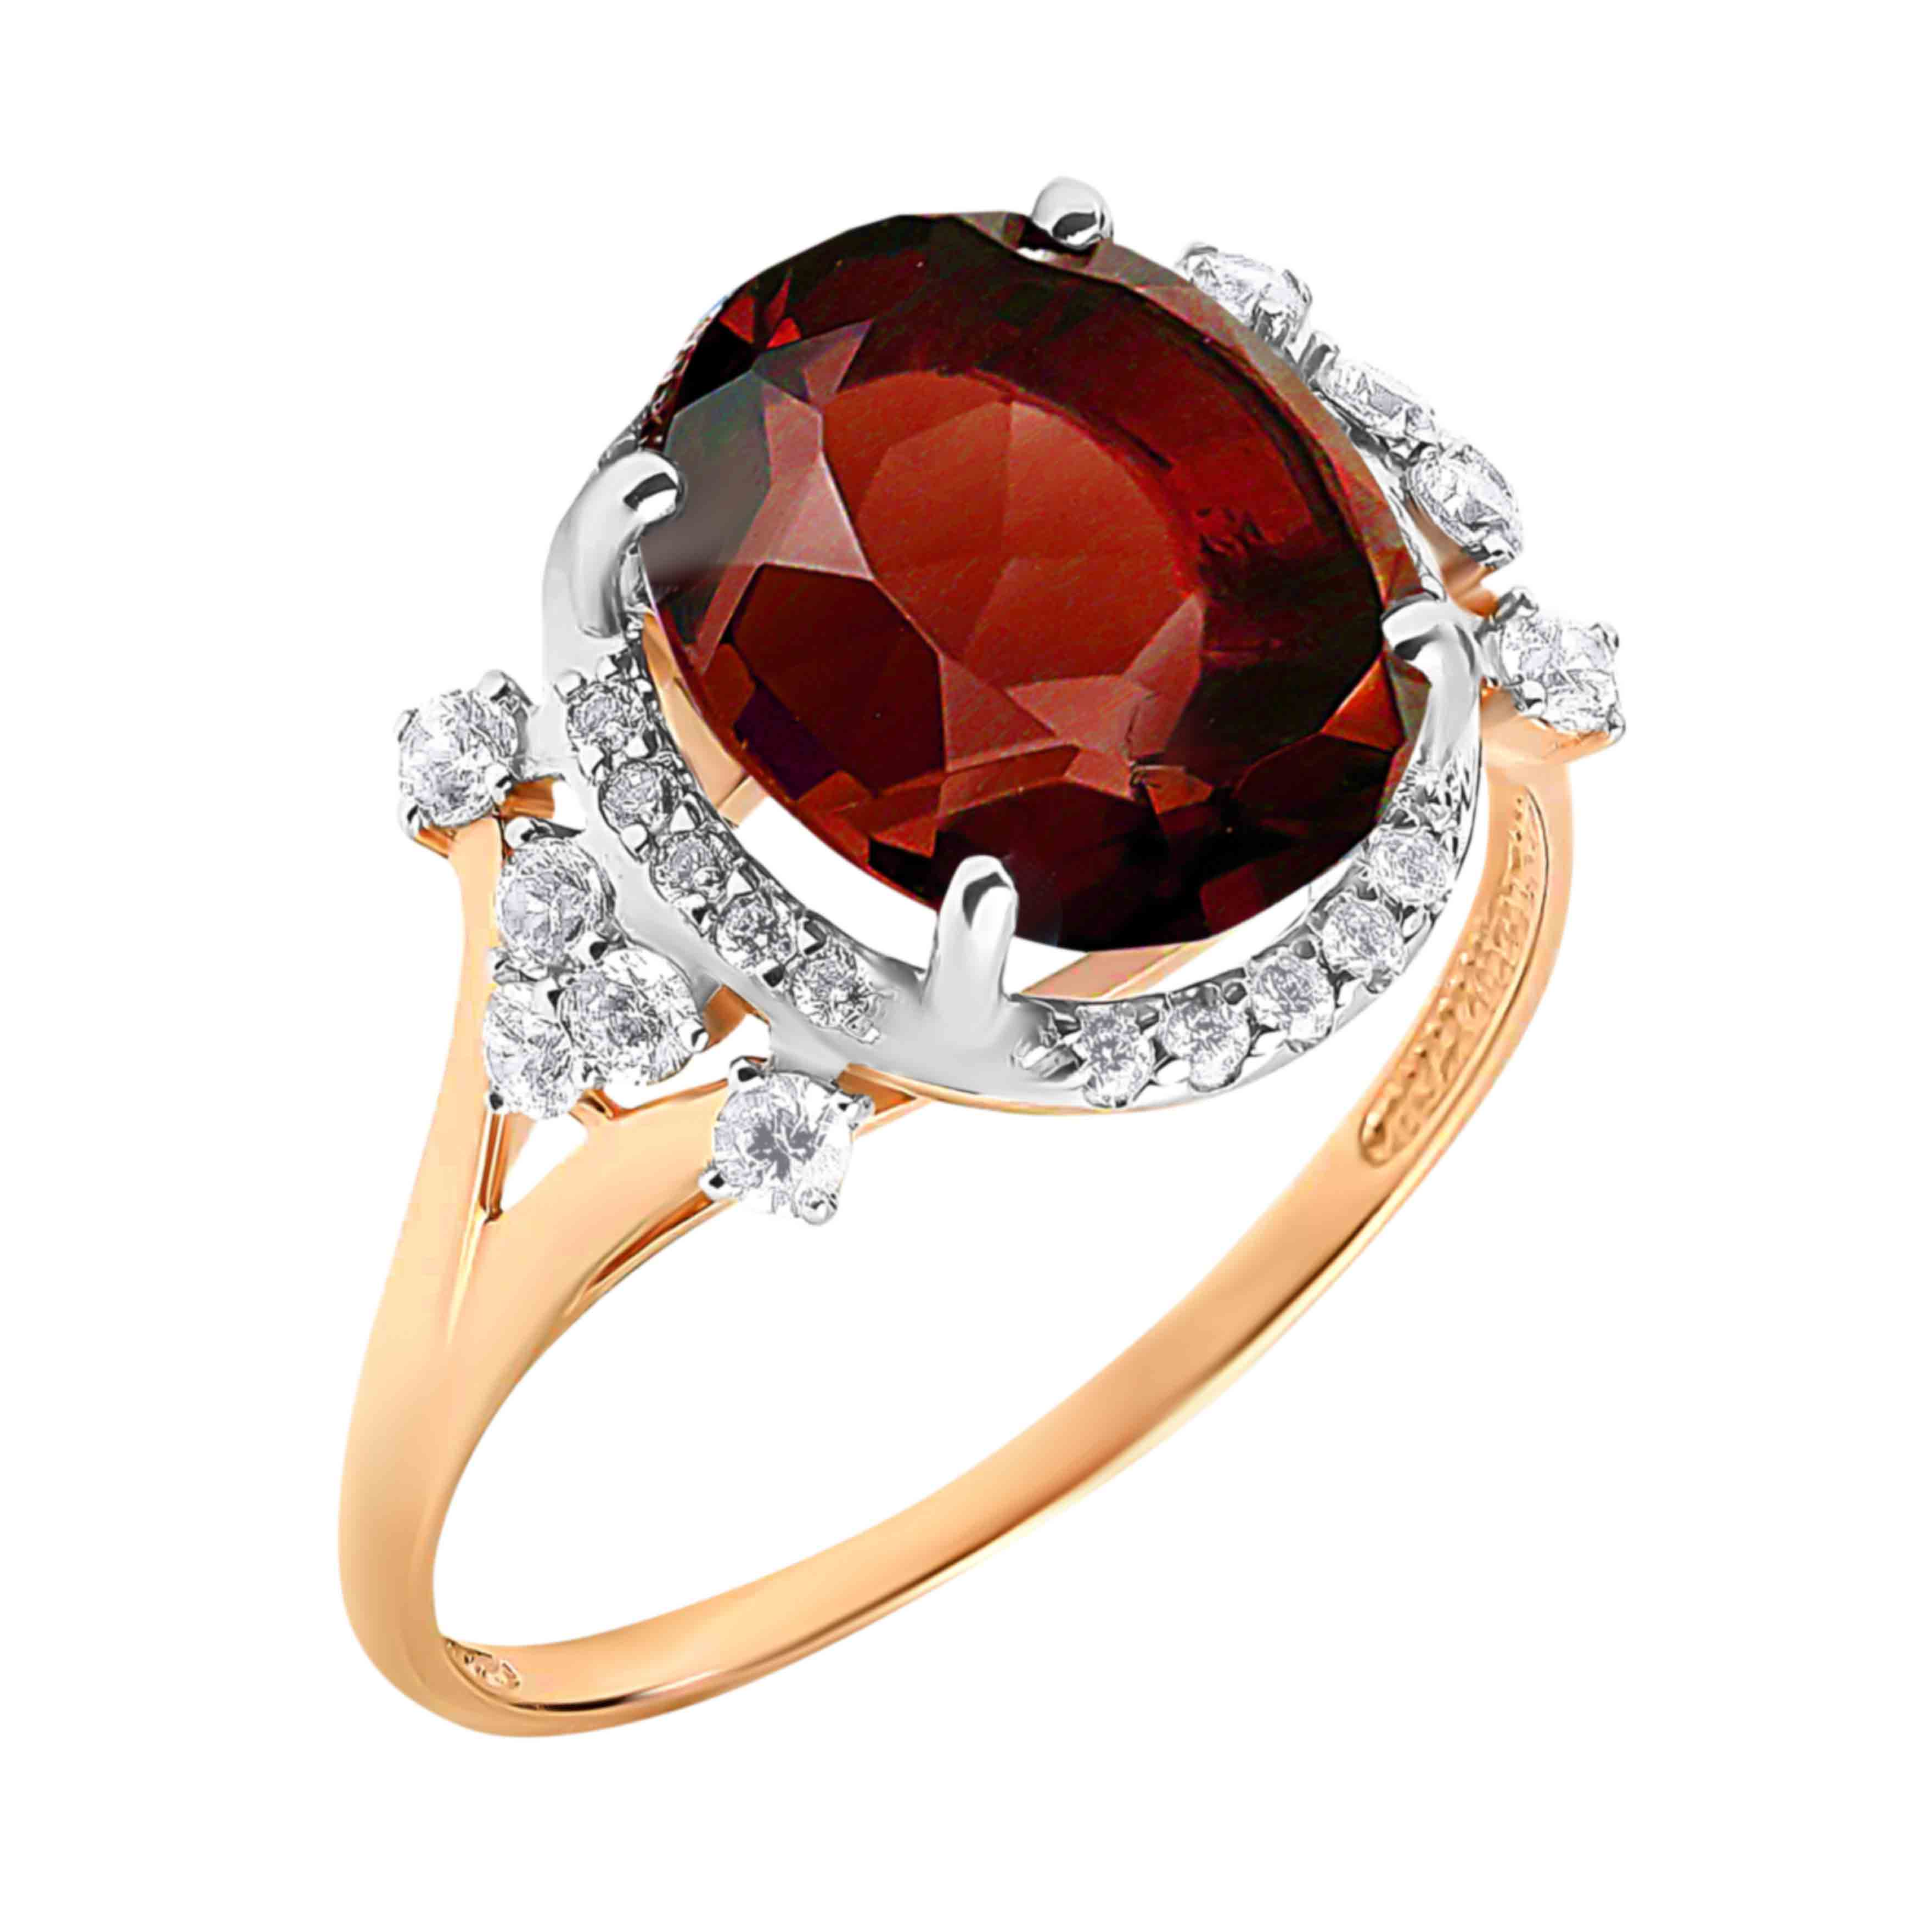 Oval-shaped Garnet and CZ Cocktail Ring